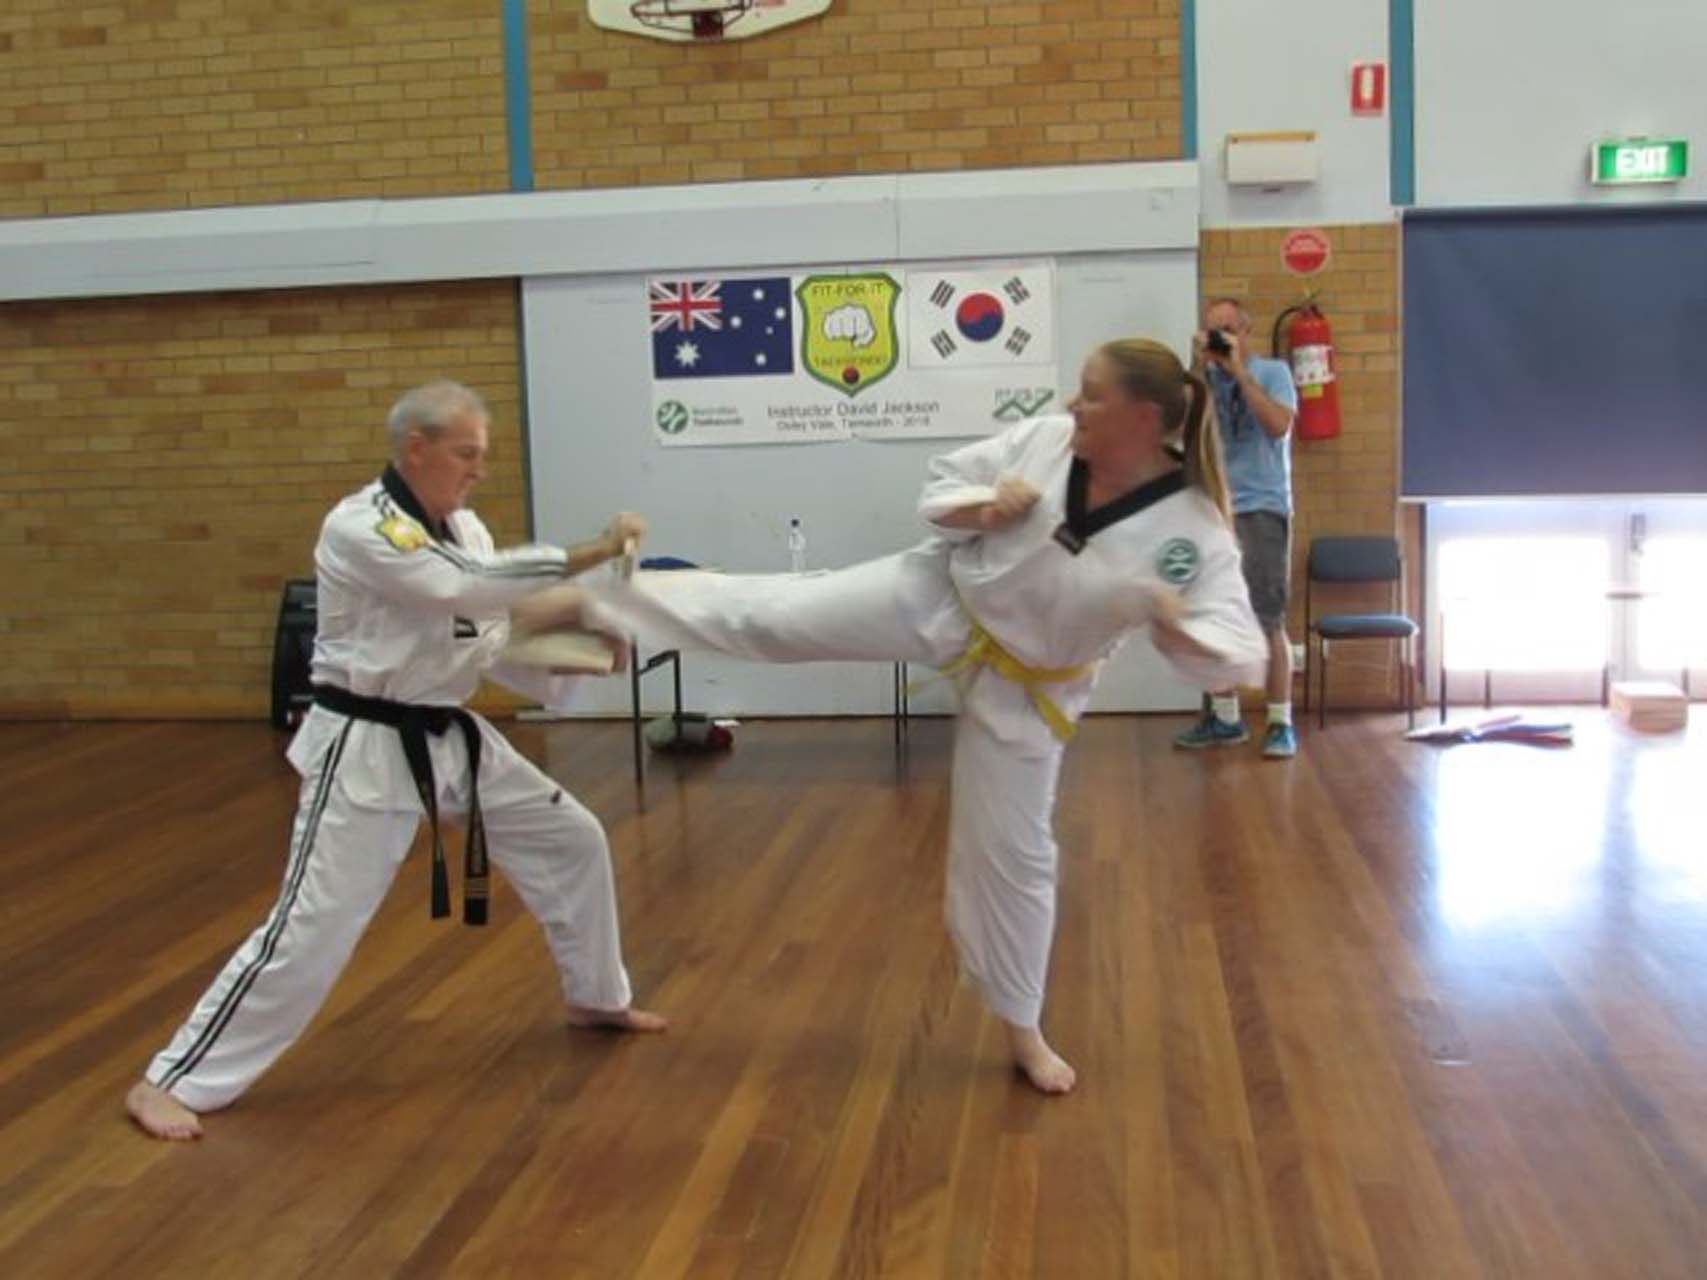 A young female adult using her taekwondo skills to kick a board from between the hands of an old man.